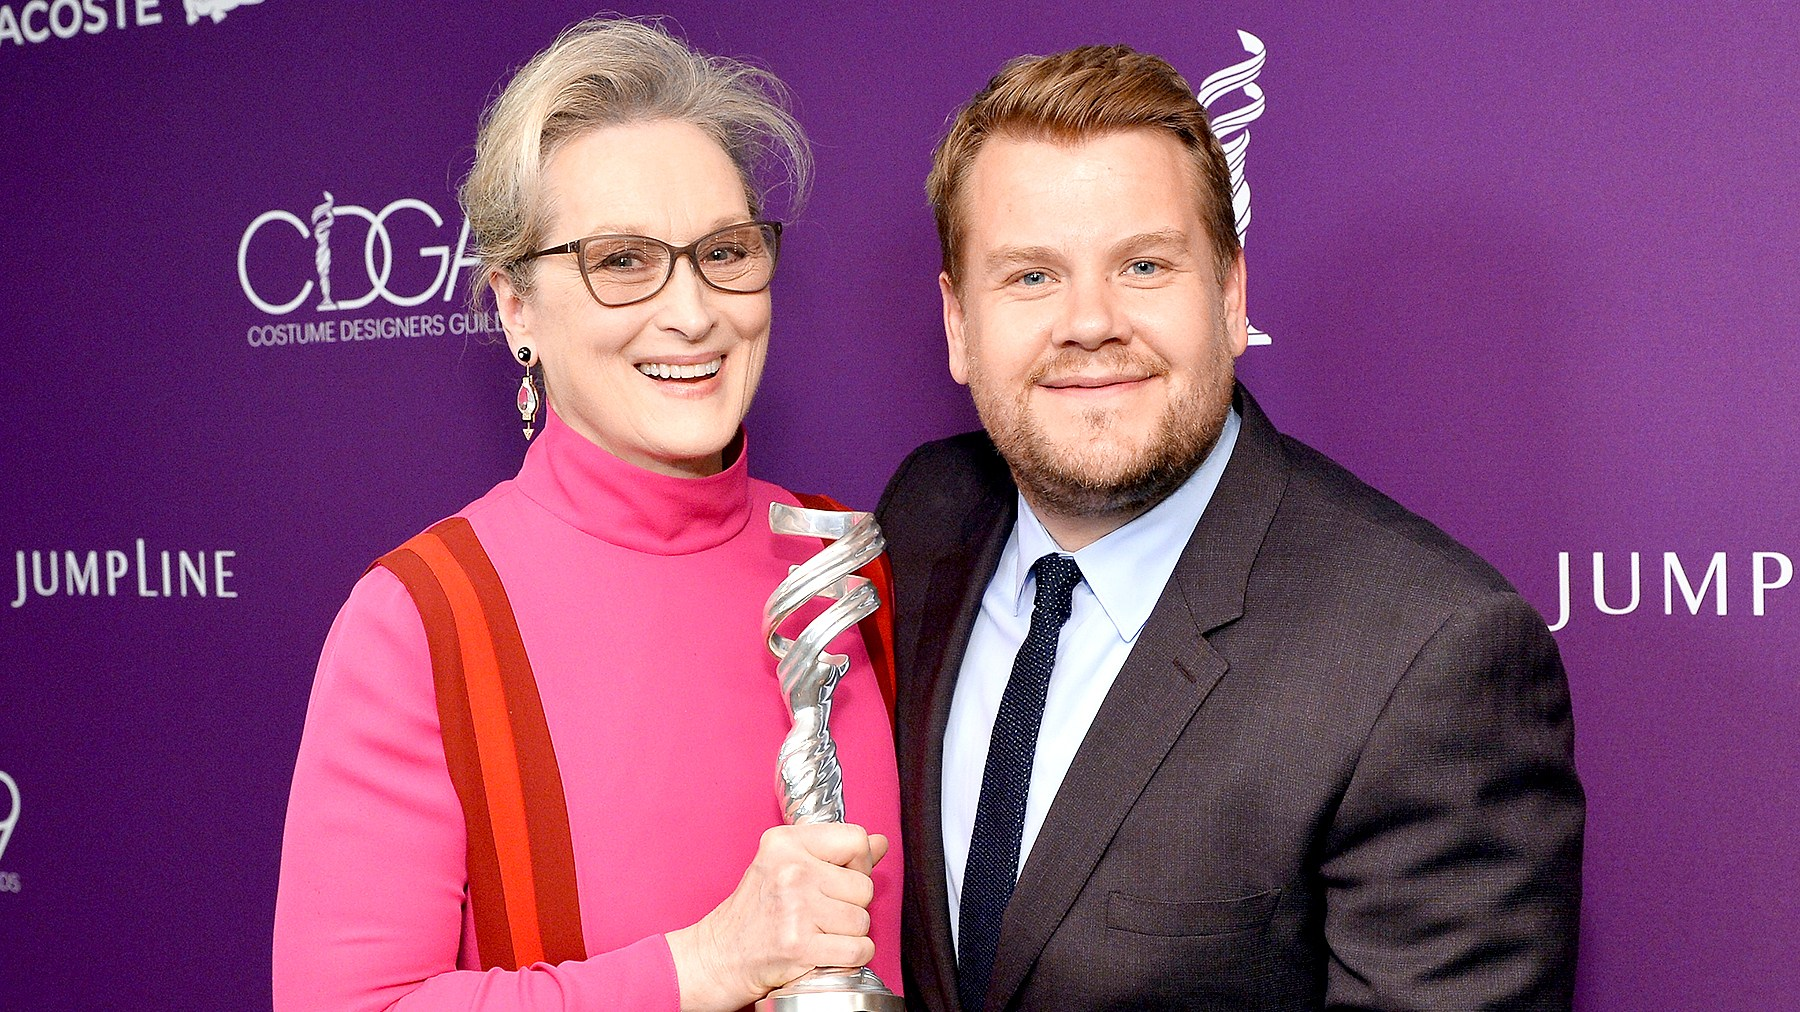 Meryl Streep, recipient of the Distinguished Collaborator Award, and TV personality James Corden attend The 19th CDGA (Costume Designers Guild Awards) with Presenting Sponsor LACOSTE at The Beverly Hilton Hotel on February 21, 2017 in Beverly Hills, California.